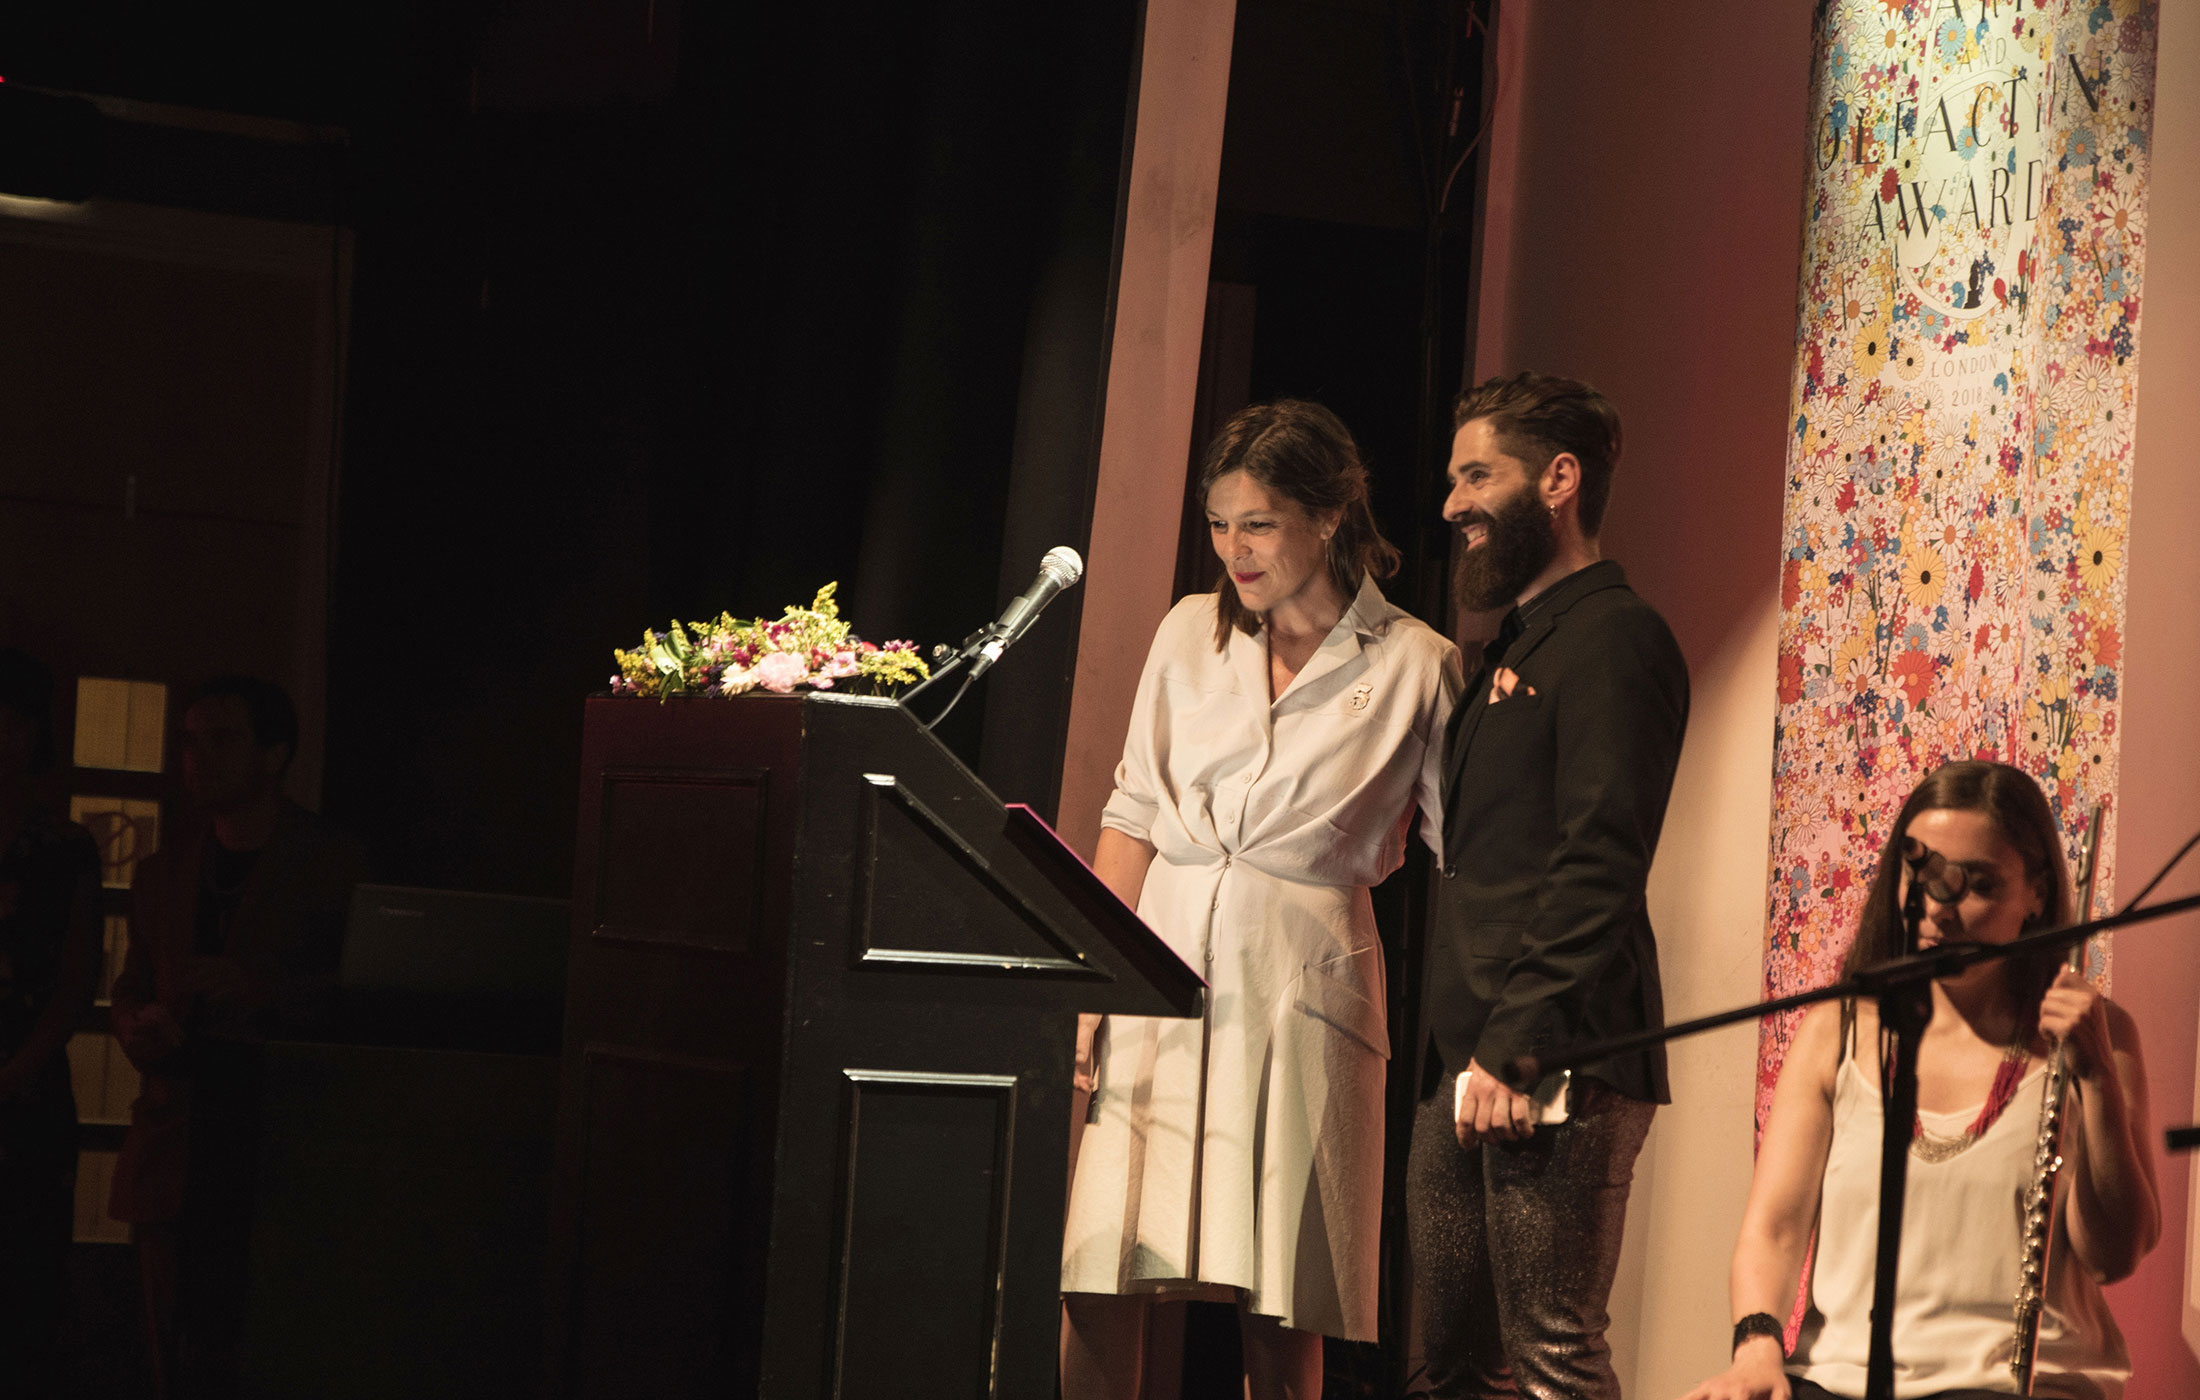 Saskia Wilson-Brown, Miguel Matos at The Art and Olfaction Awards, Photo by Marina Chichi